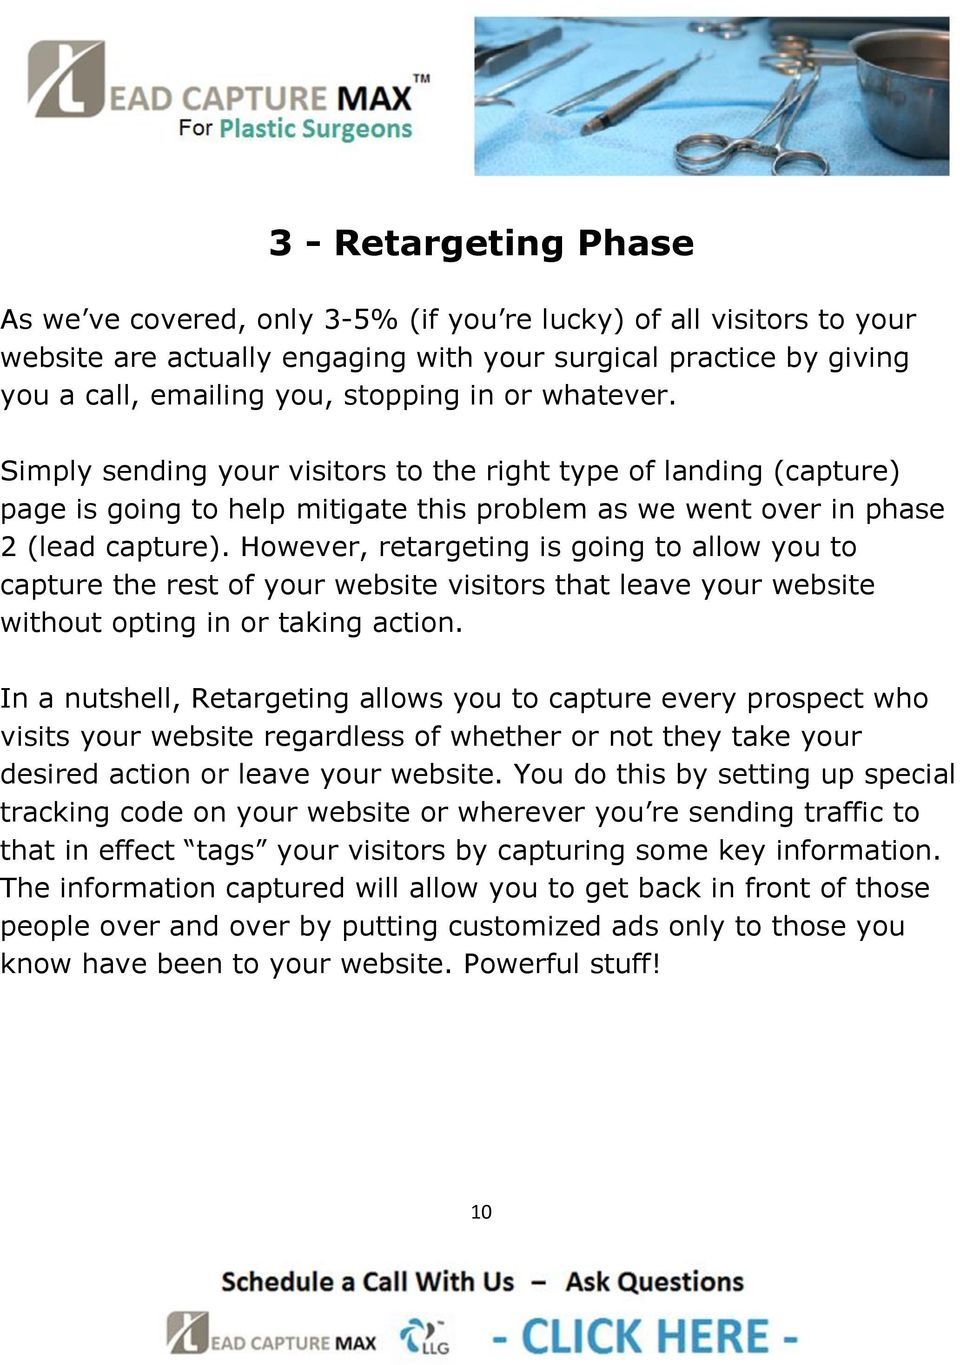 However, retargeting is going to allow you to capture the rest of your website visitors that leave your website without opting in or taking action.